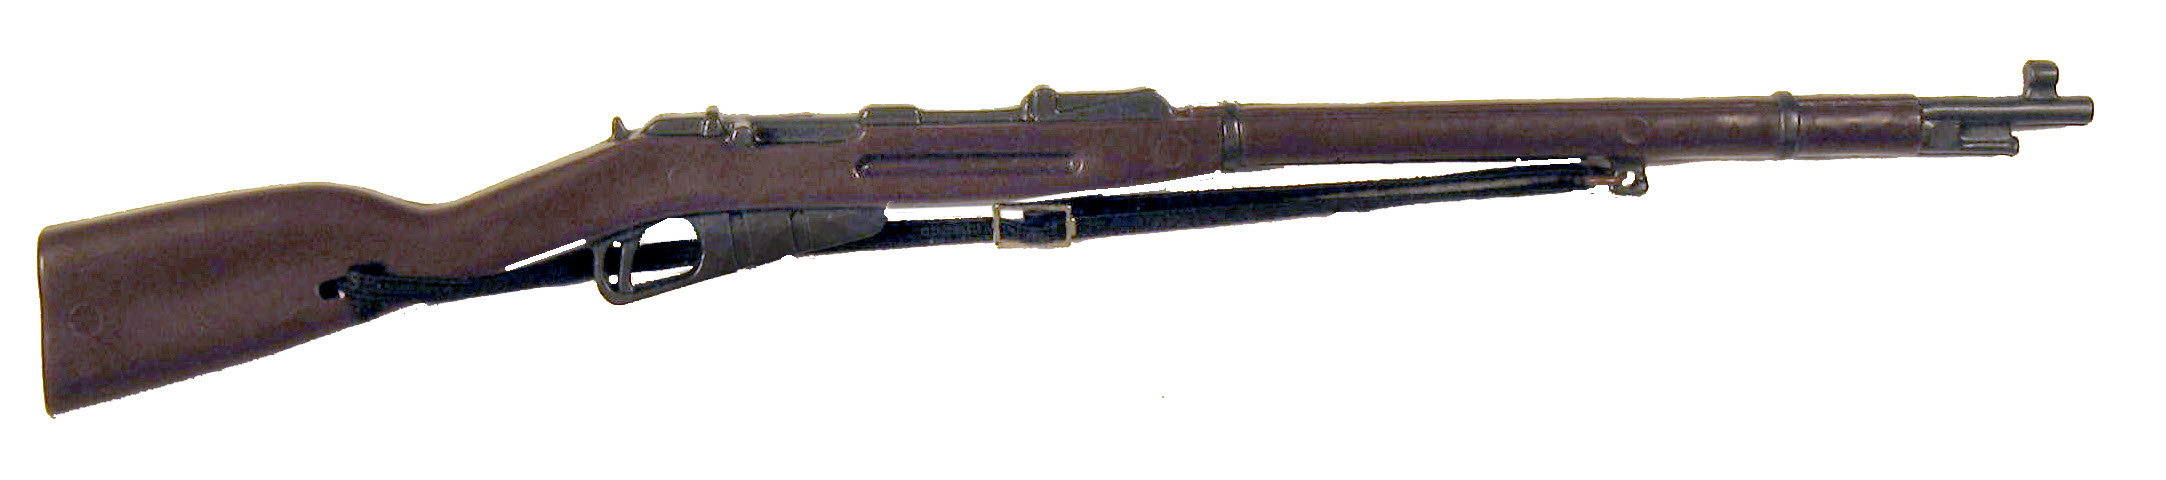 Russian Moissin Nagant Rifle - Click Image to Close